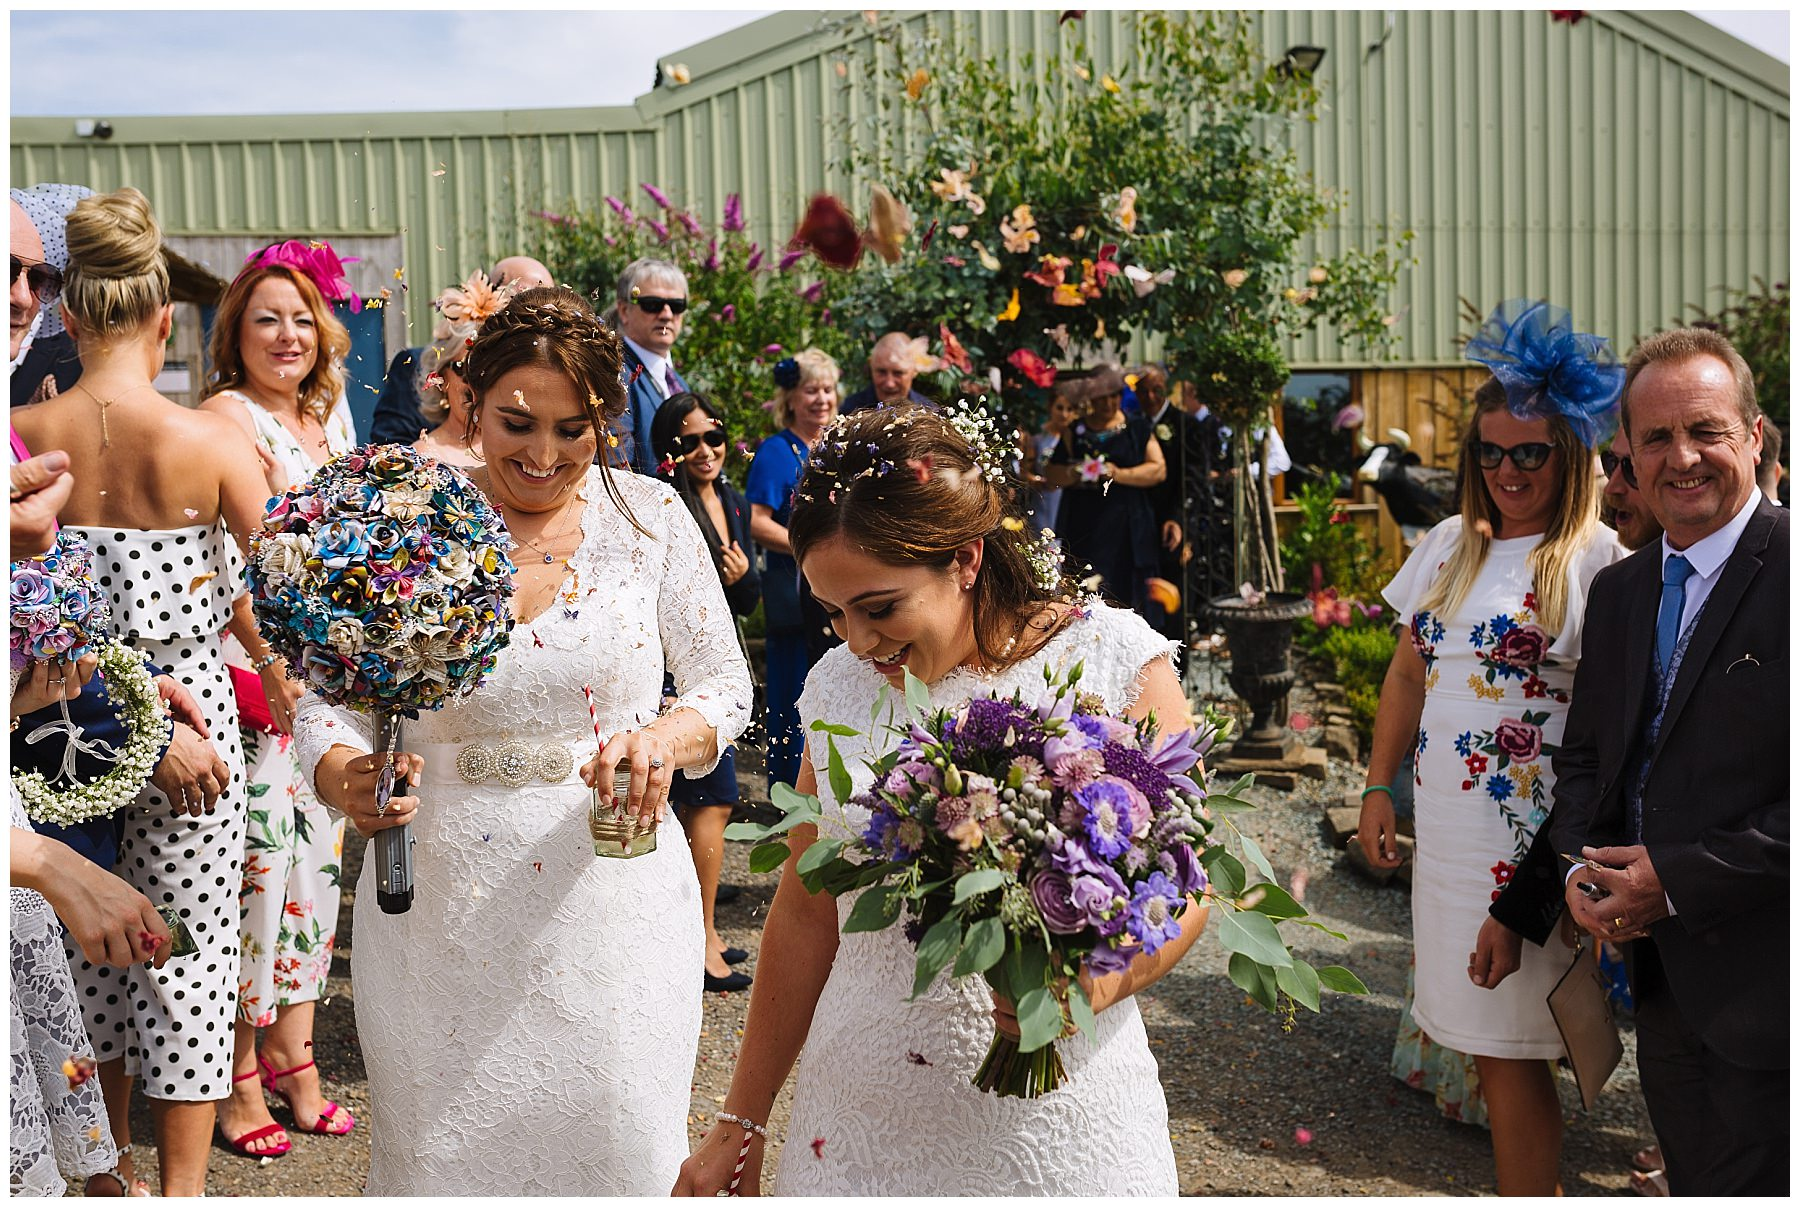 Two brides showered with confetti